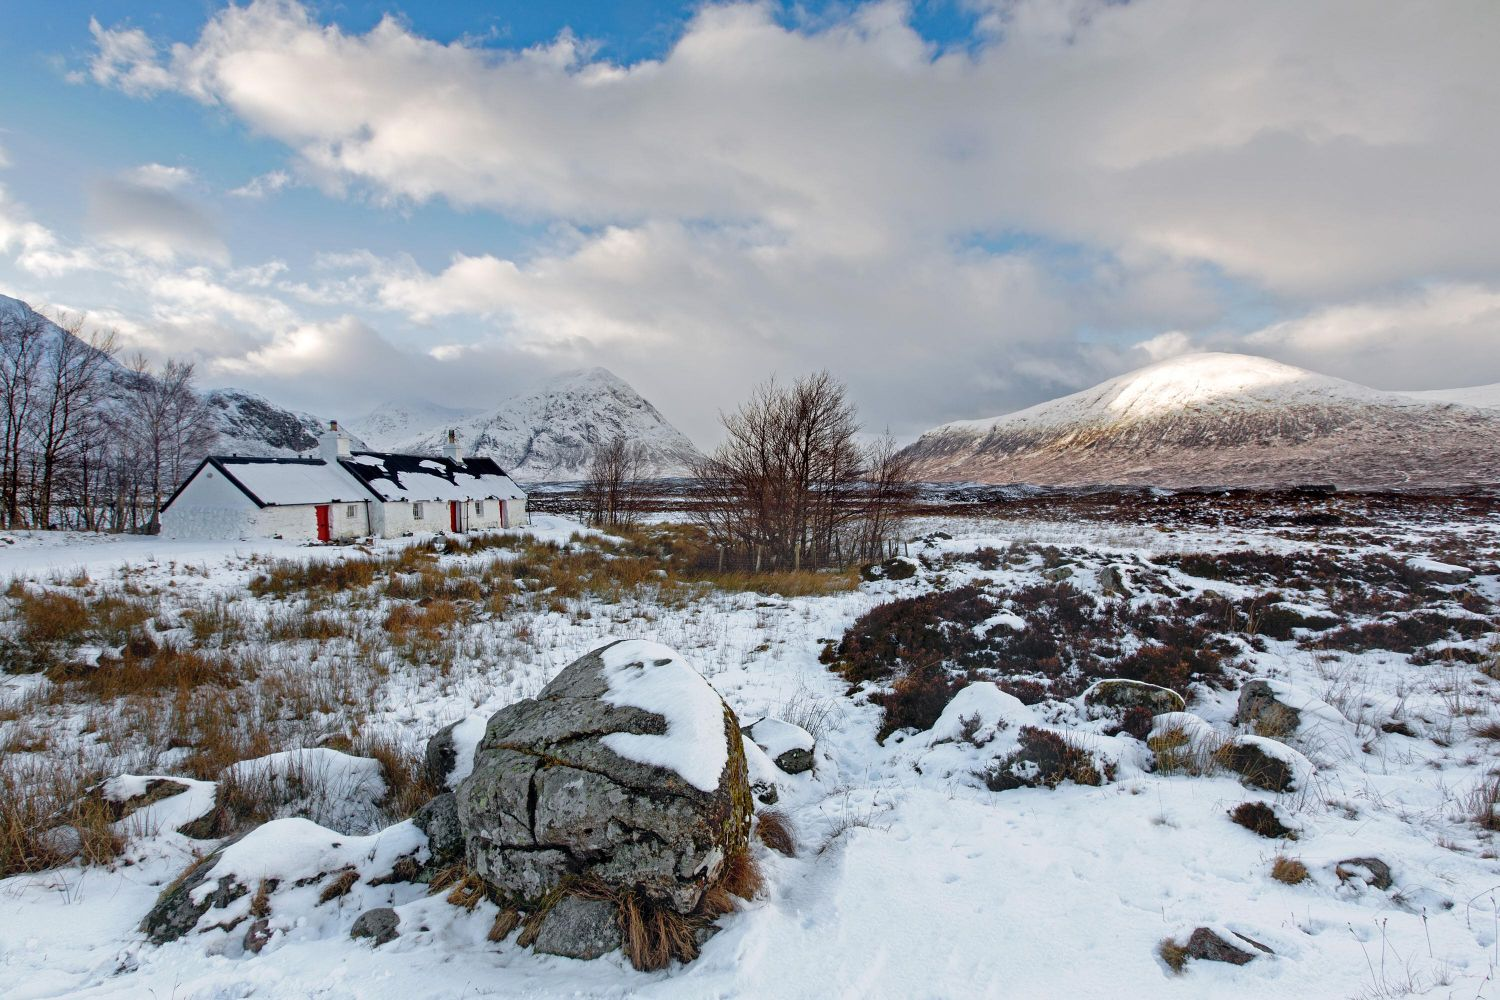 The famous Blackrock Cottage in winter at Glencoe with Buachaille Etive Mor in the background.